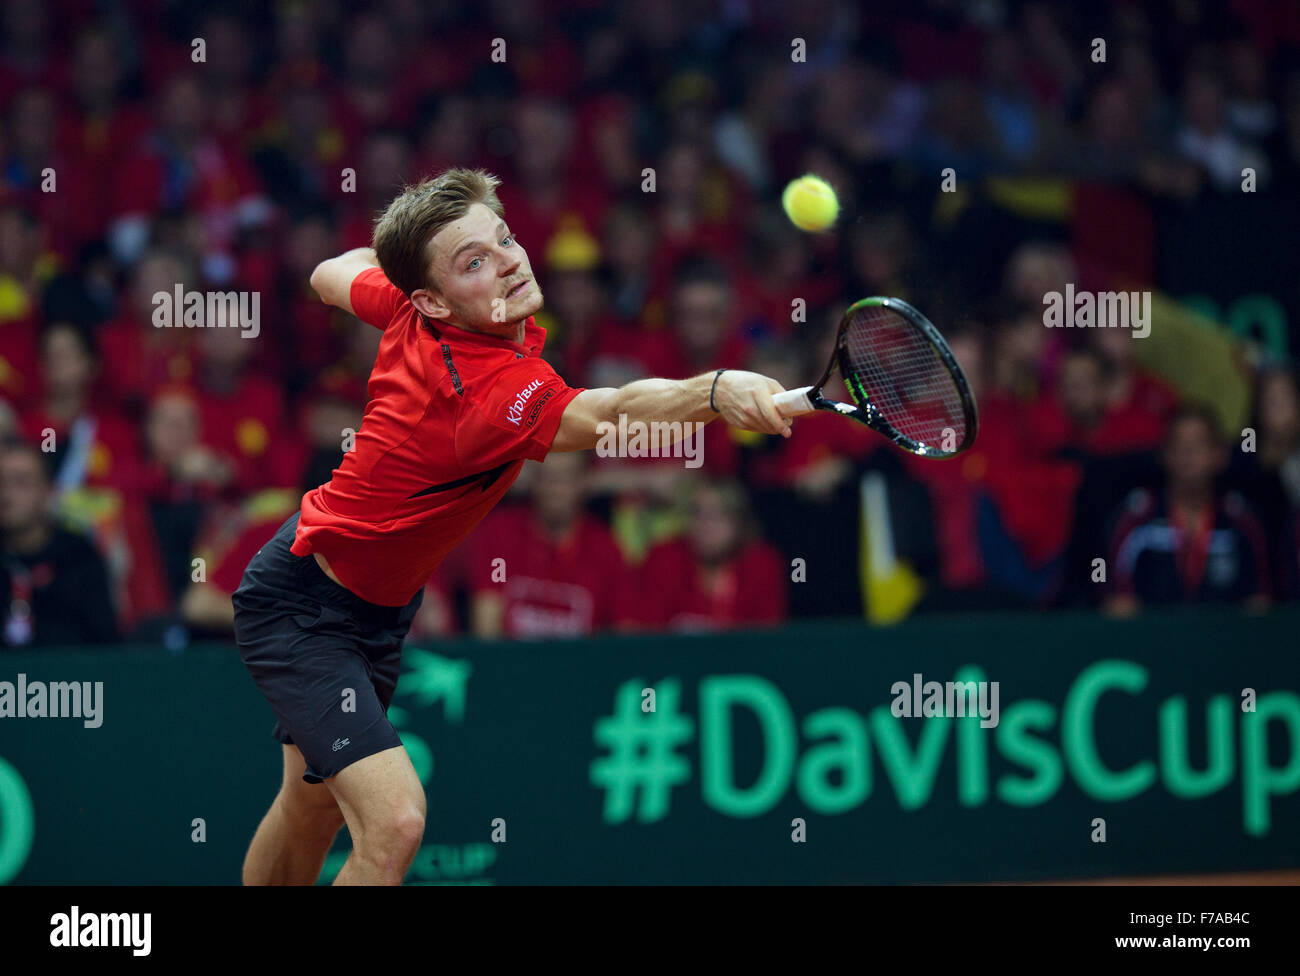 Gent, Belgium. 27th November, 2015. Davis Cup Final, Belgium-Great Britain, First match, David Goffin (BEL) Credit: - Stock Image